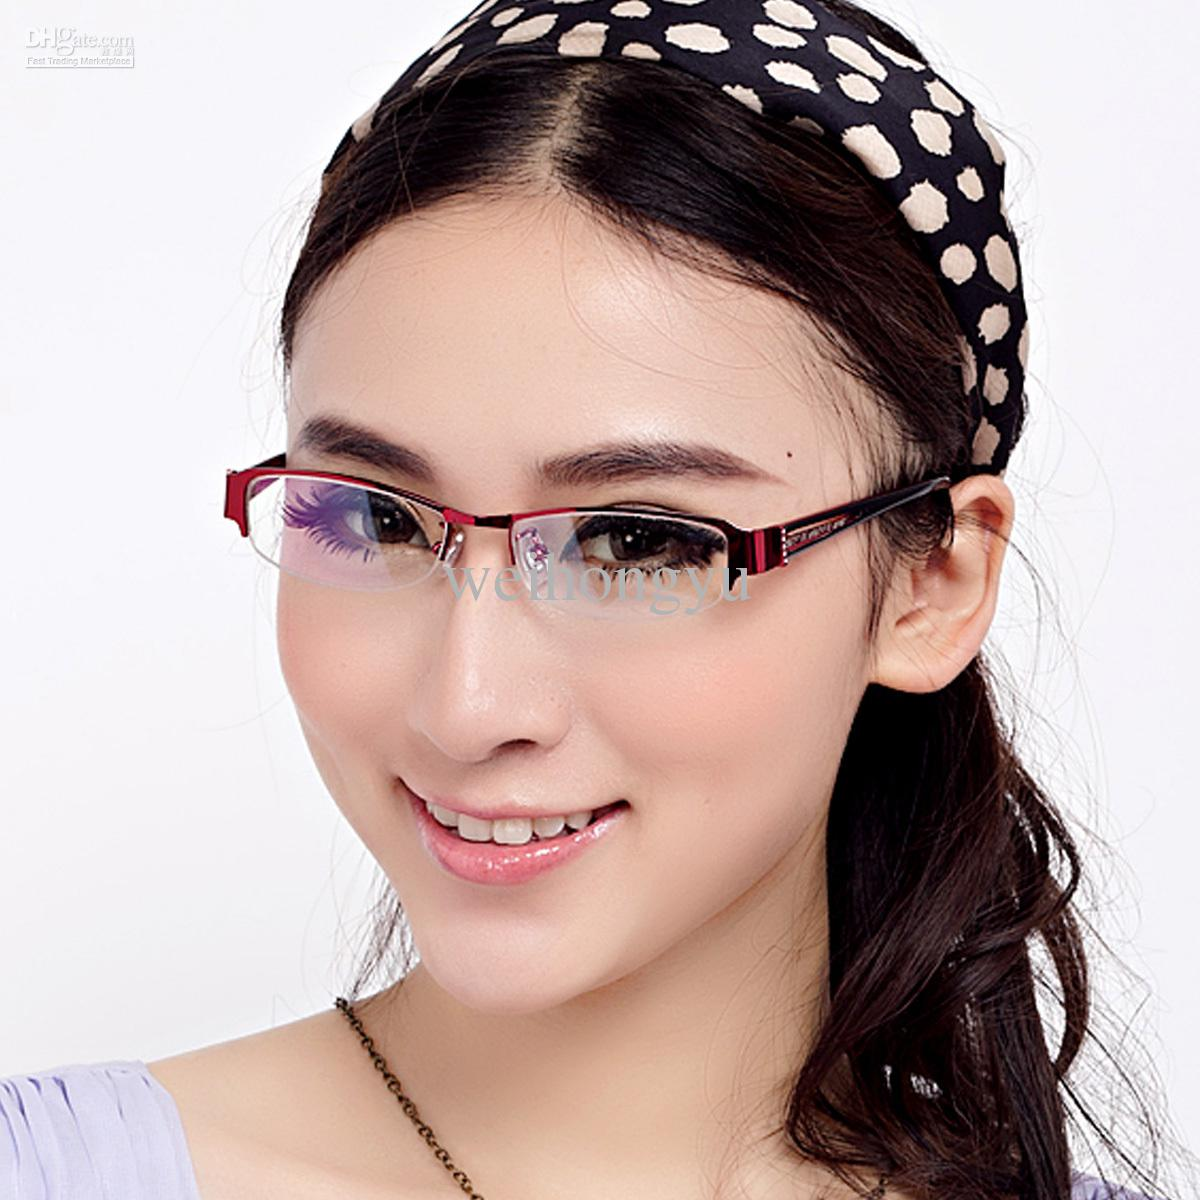 Gallery images and information: Optical Frames For Women